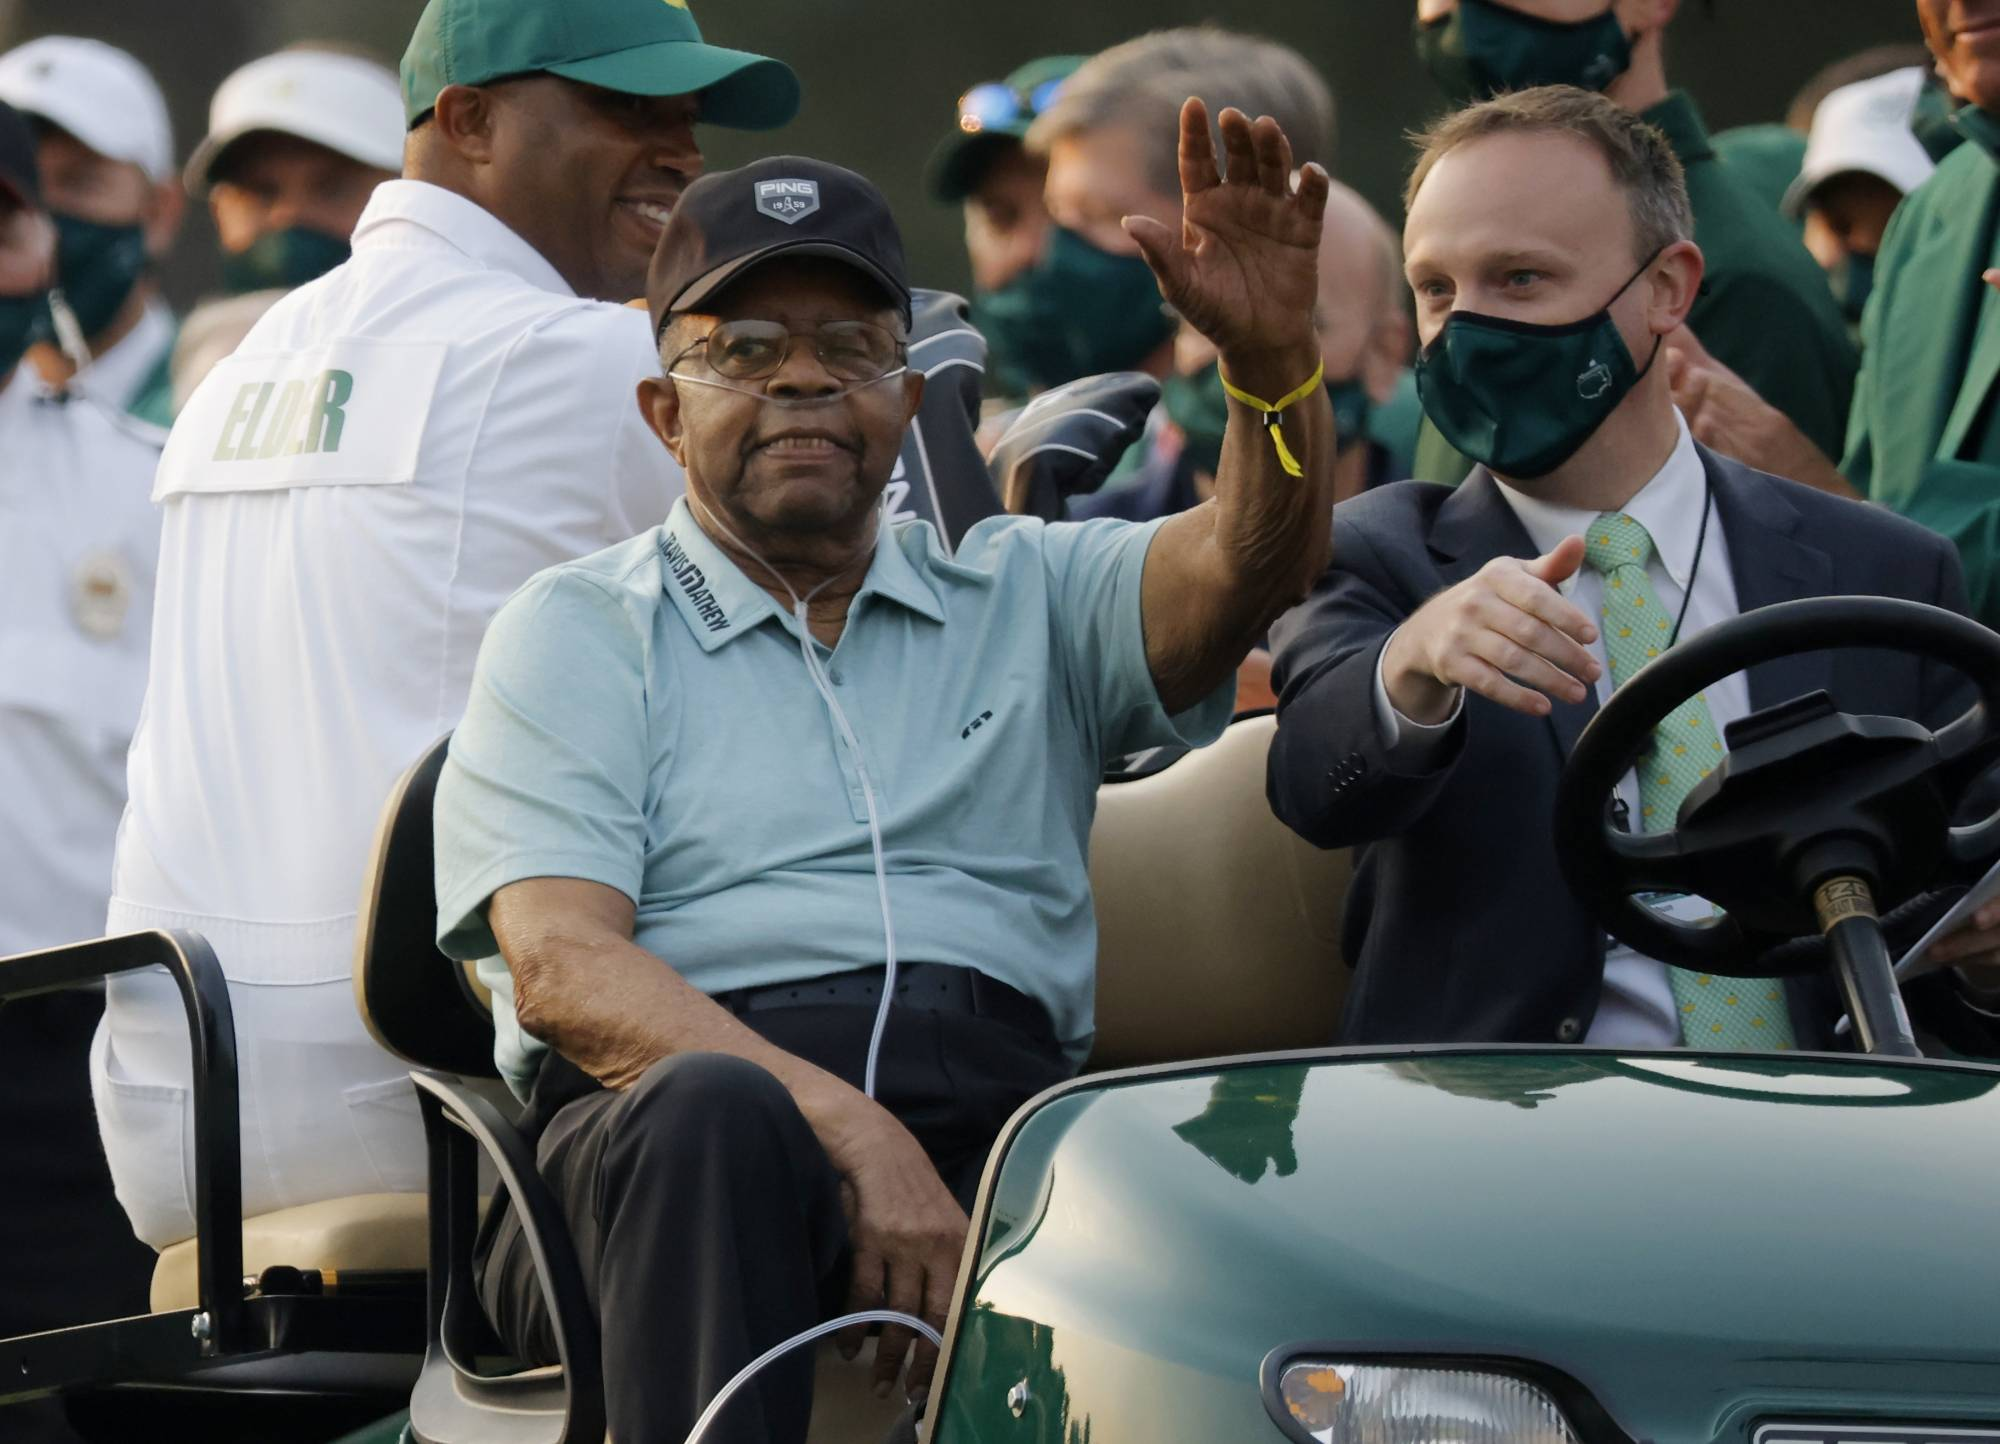 Honorary starter Lee Elder waves before the ceremonial start of the Masters in Augusta, Georgia, on Thursday. | REUTERS